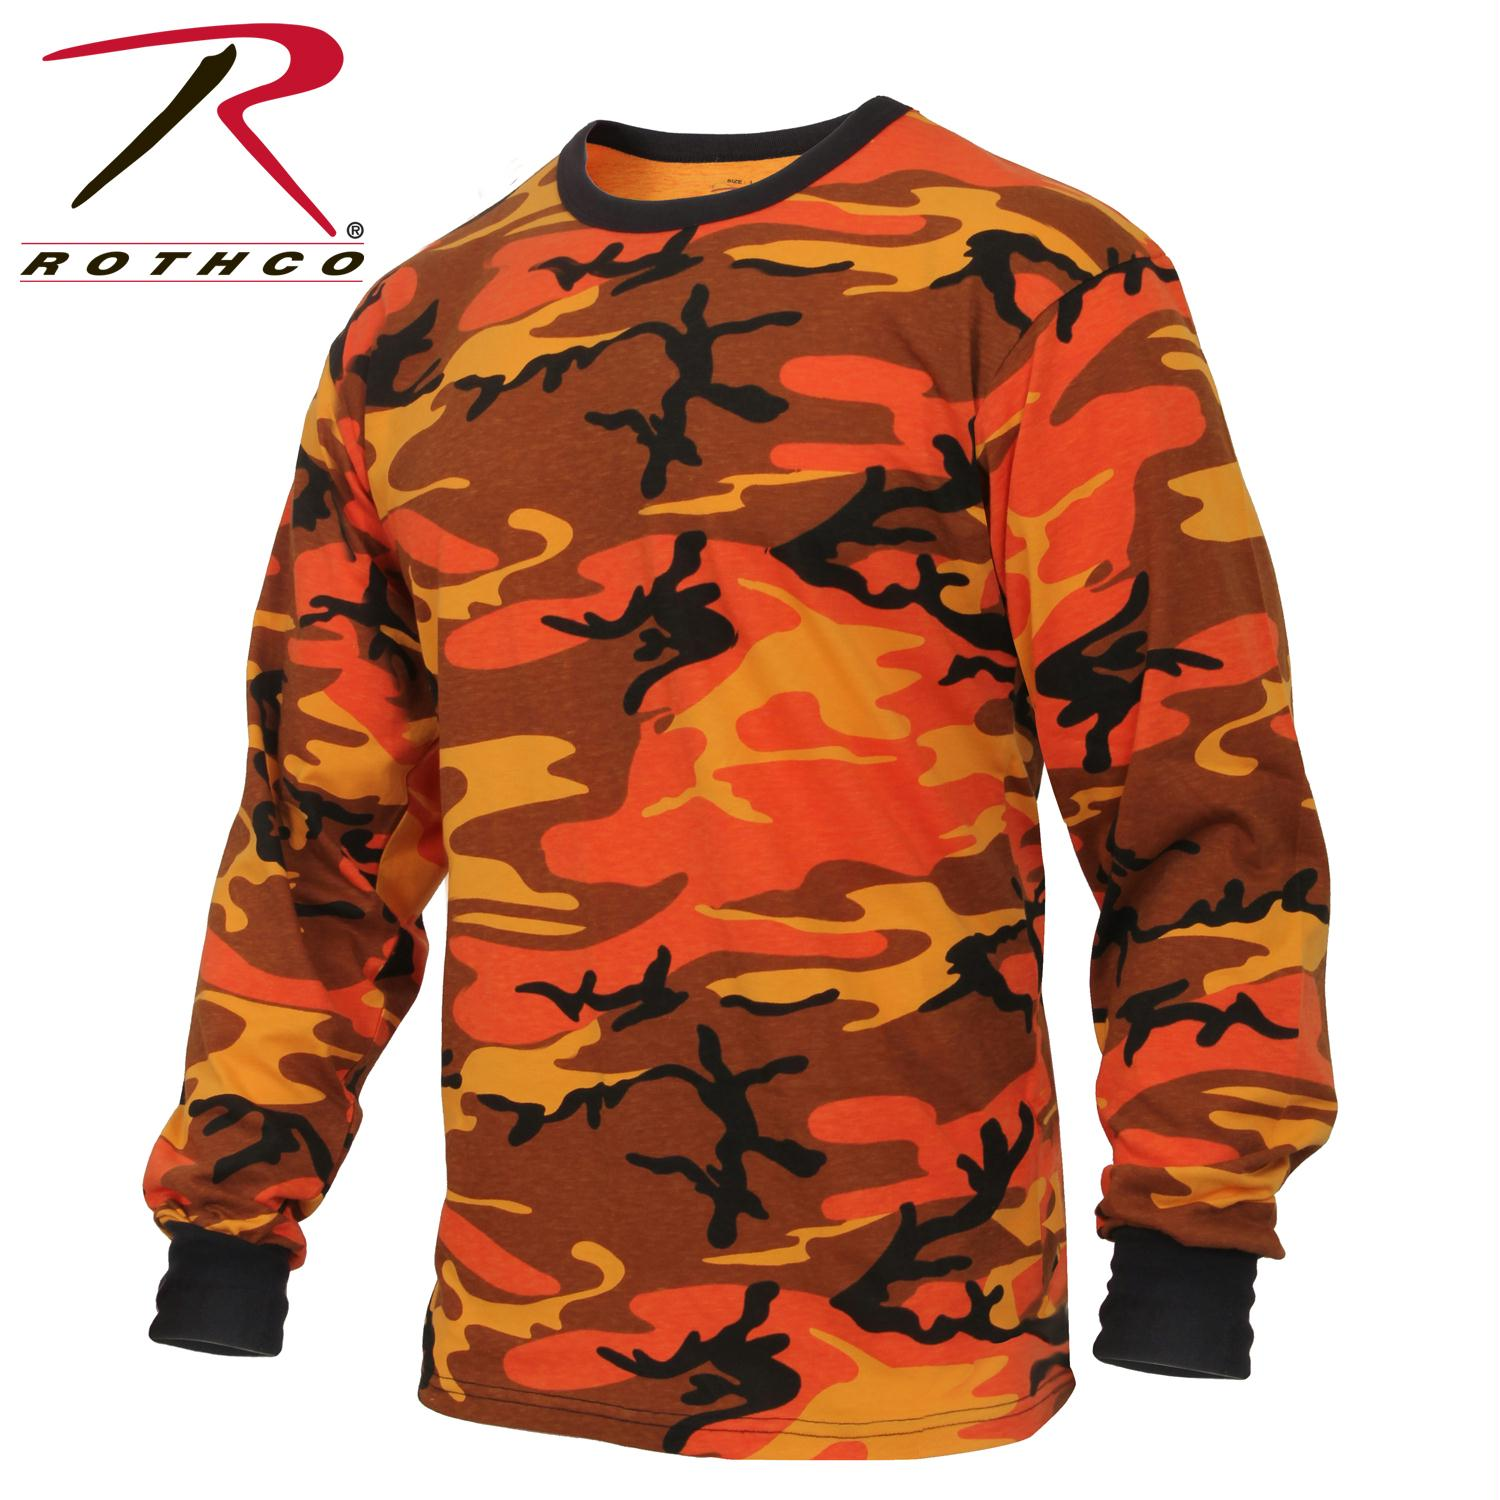 Rothco Long Sleeve Colored Camo T-Shirt - Savage Orange Camo / 2XL